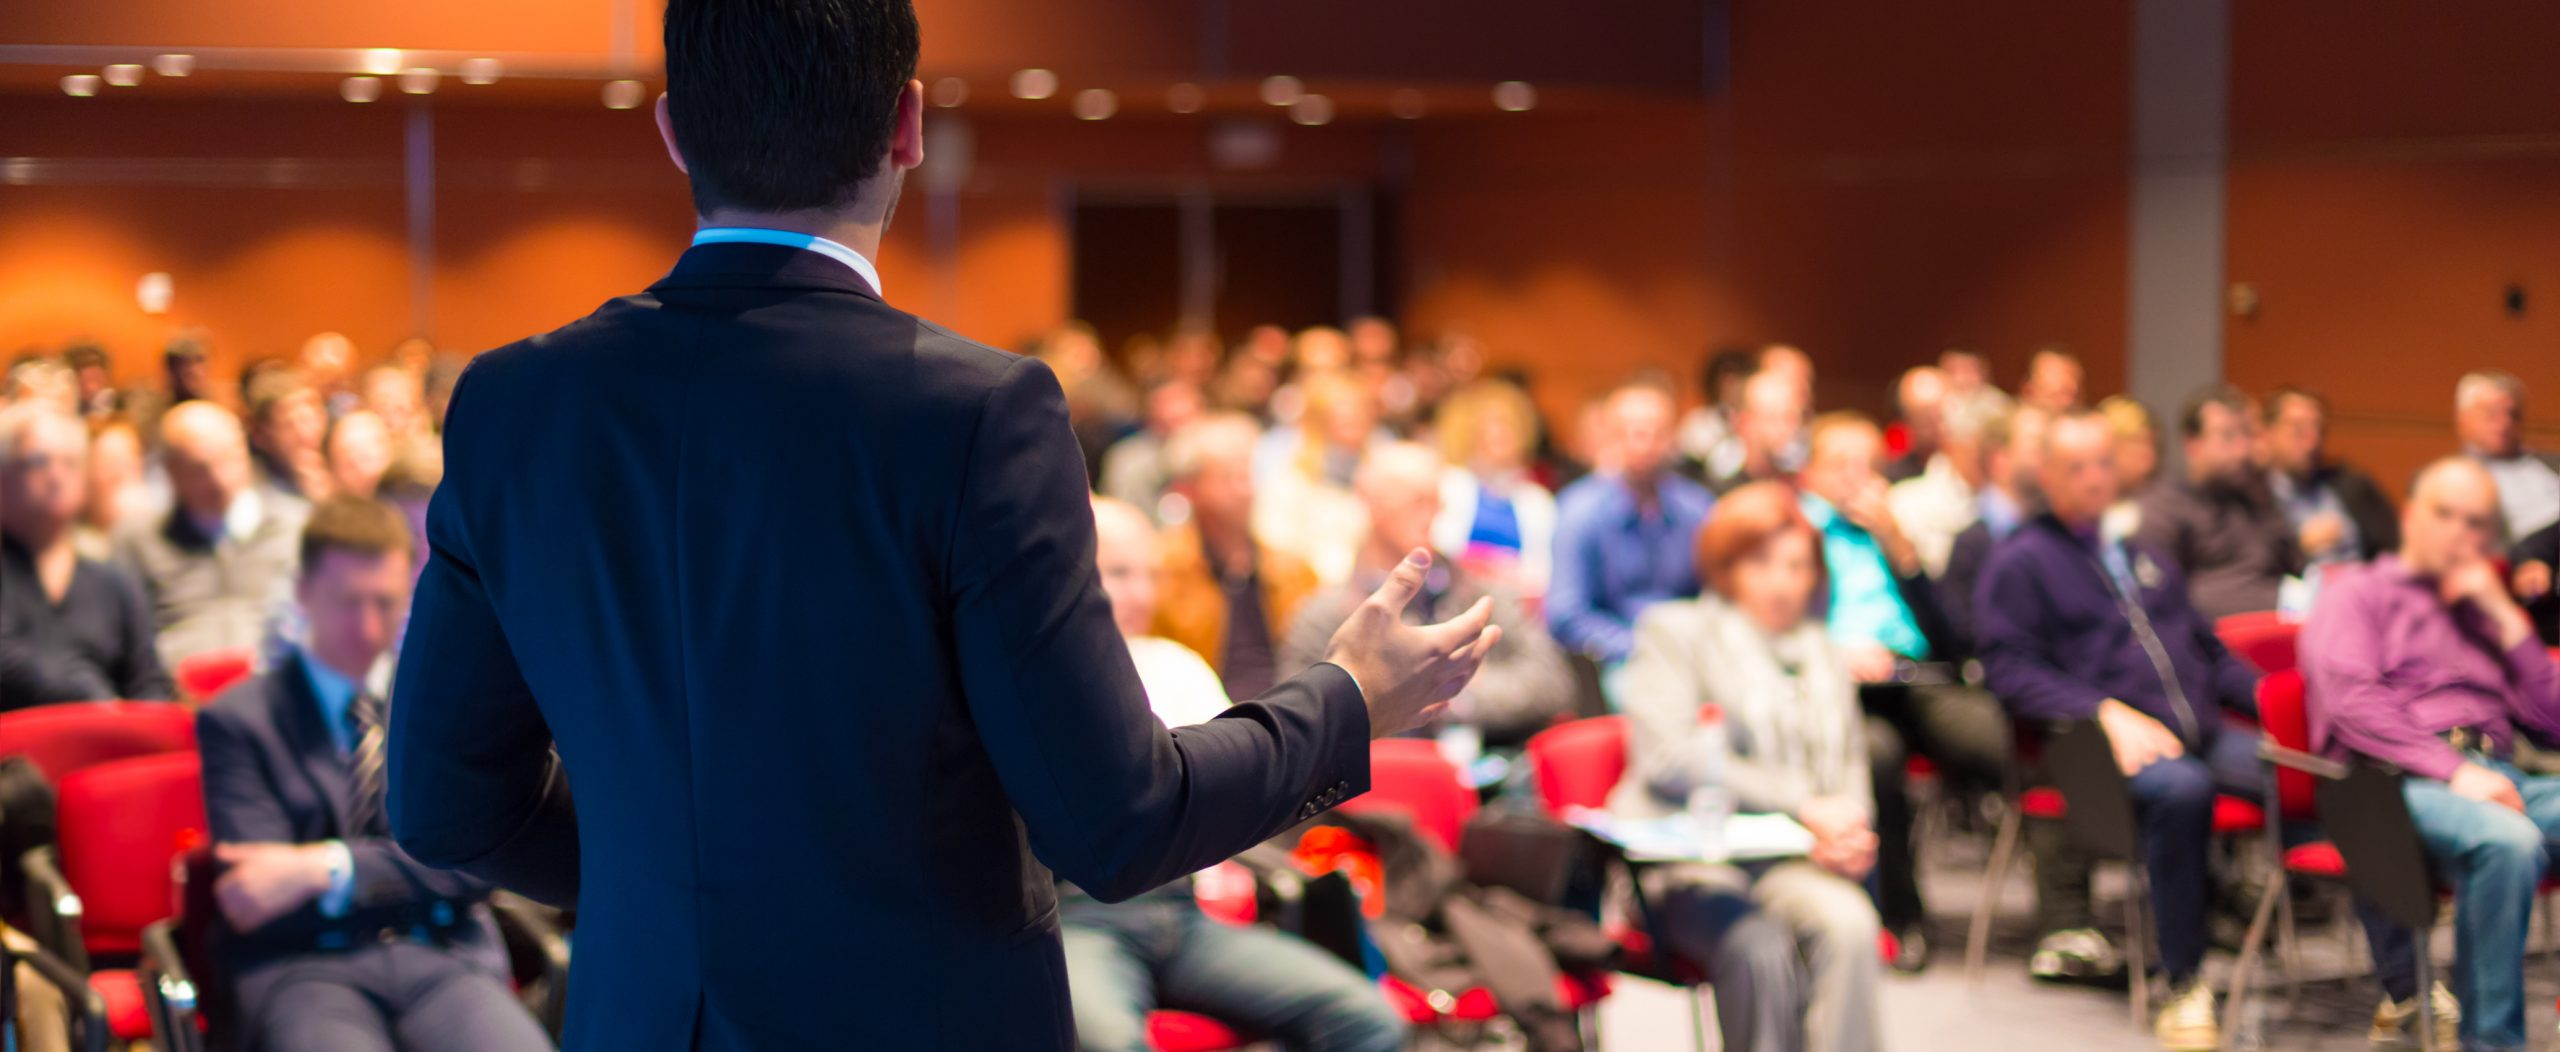 Business Coaching Series Begins Jan. 9 in San Diego; Continues in Irvine March 28th